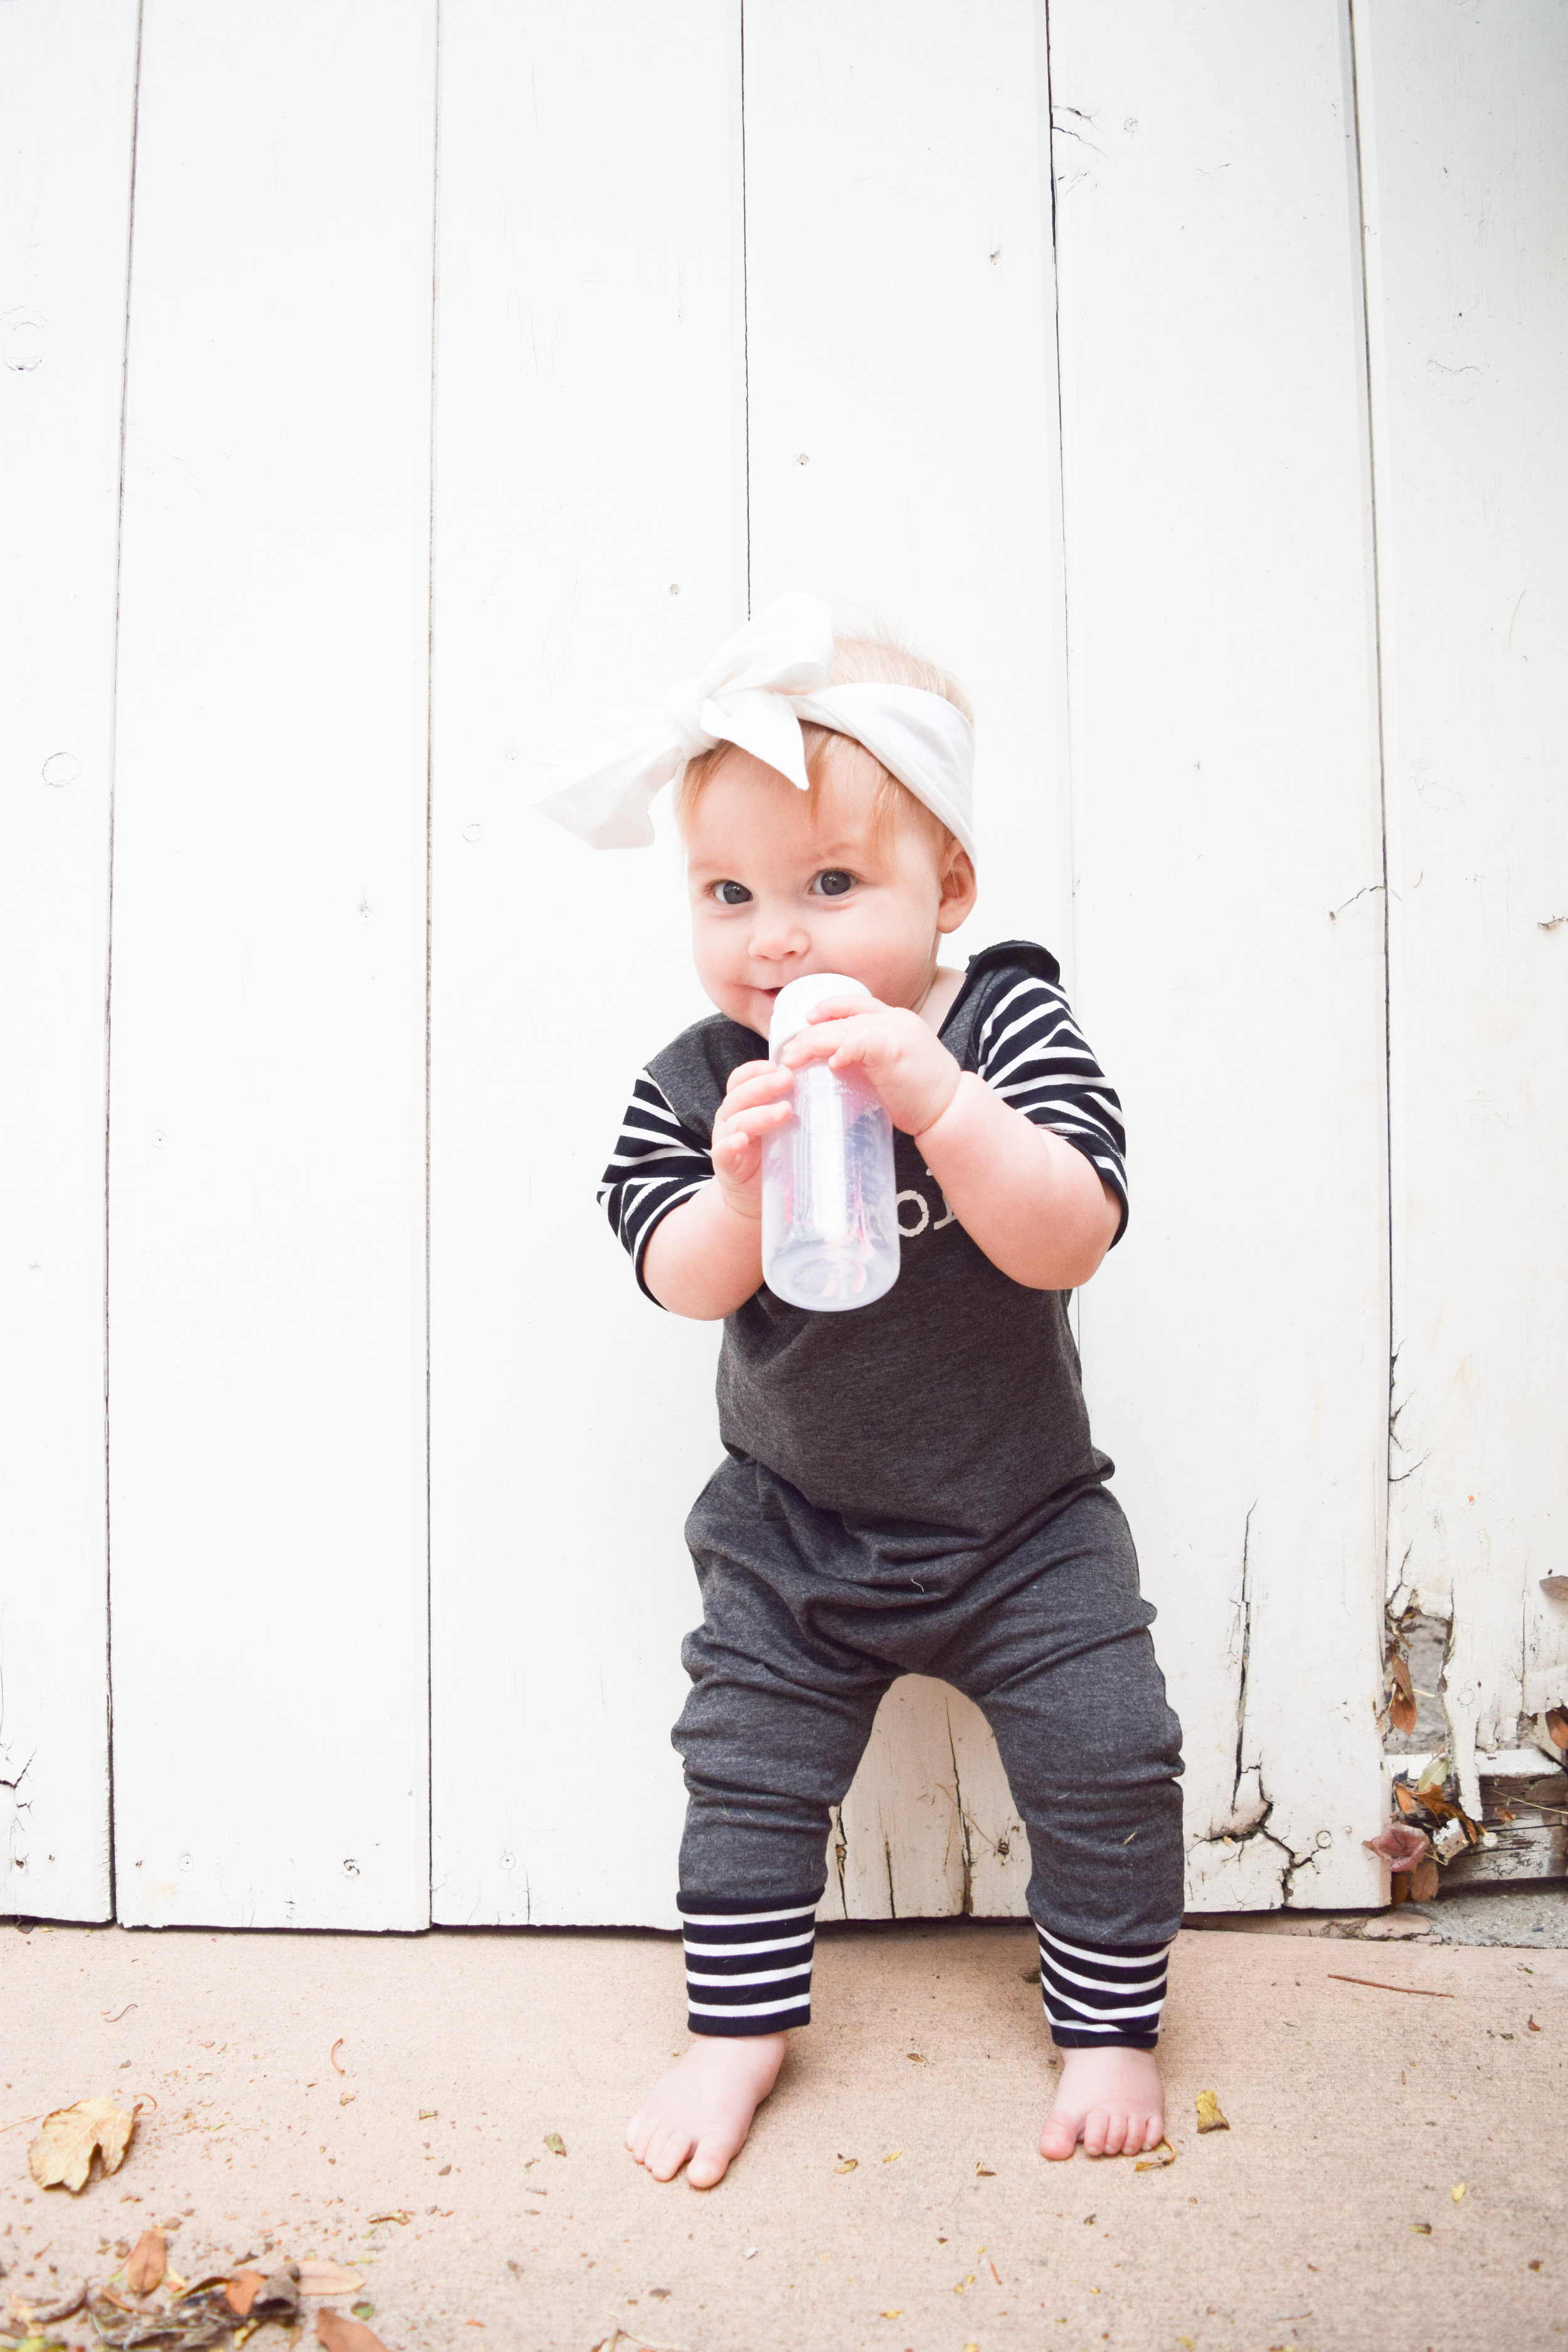 BABY ROMPERS | Are baby rompers a hassle?